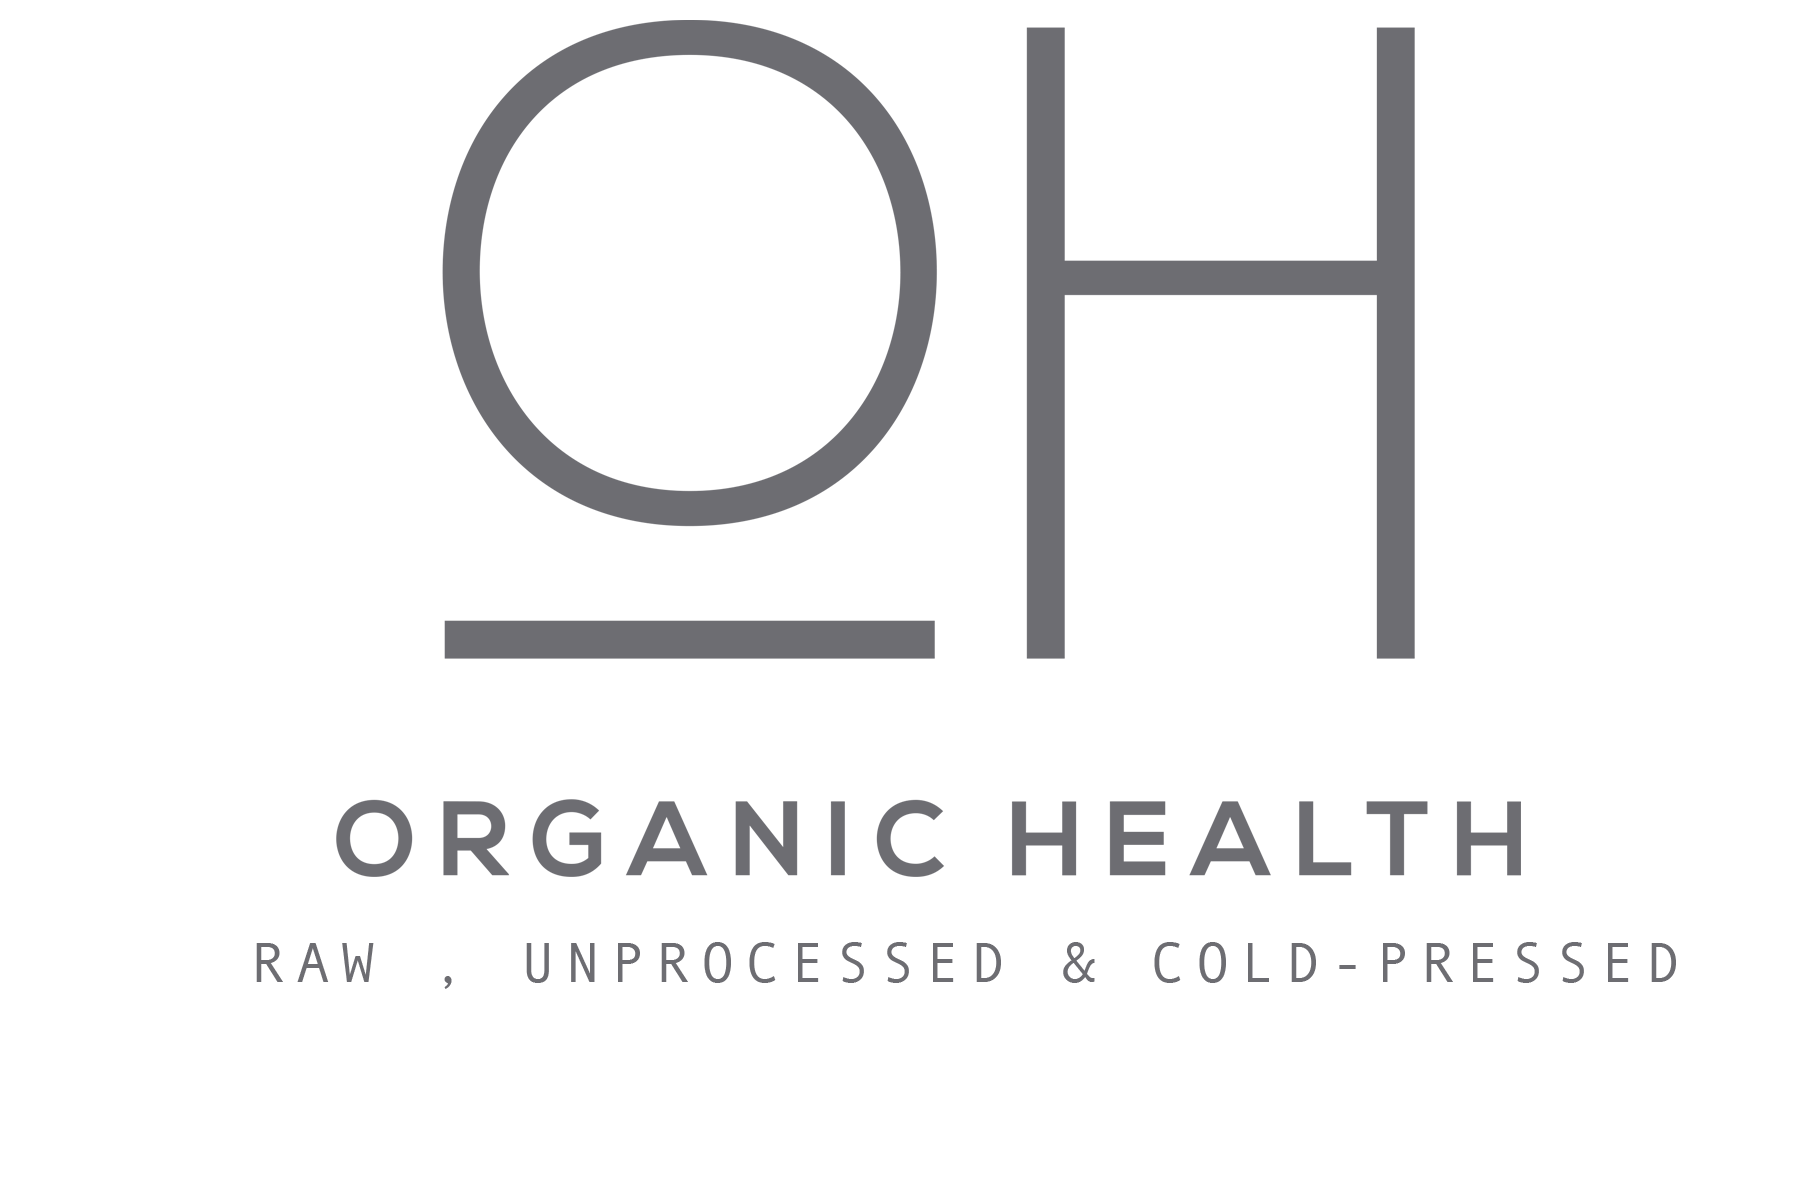 Organic Health to soon take Hyderabad the raw, unprocessed and natural way